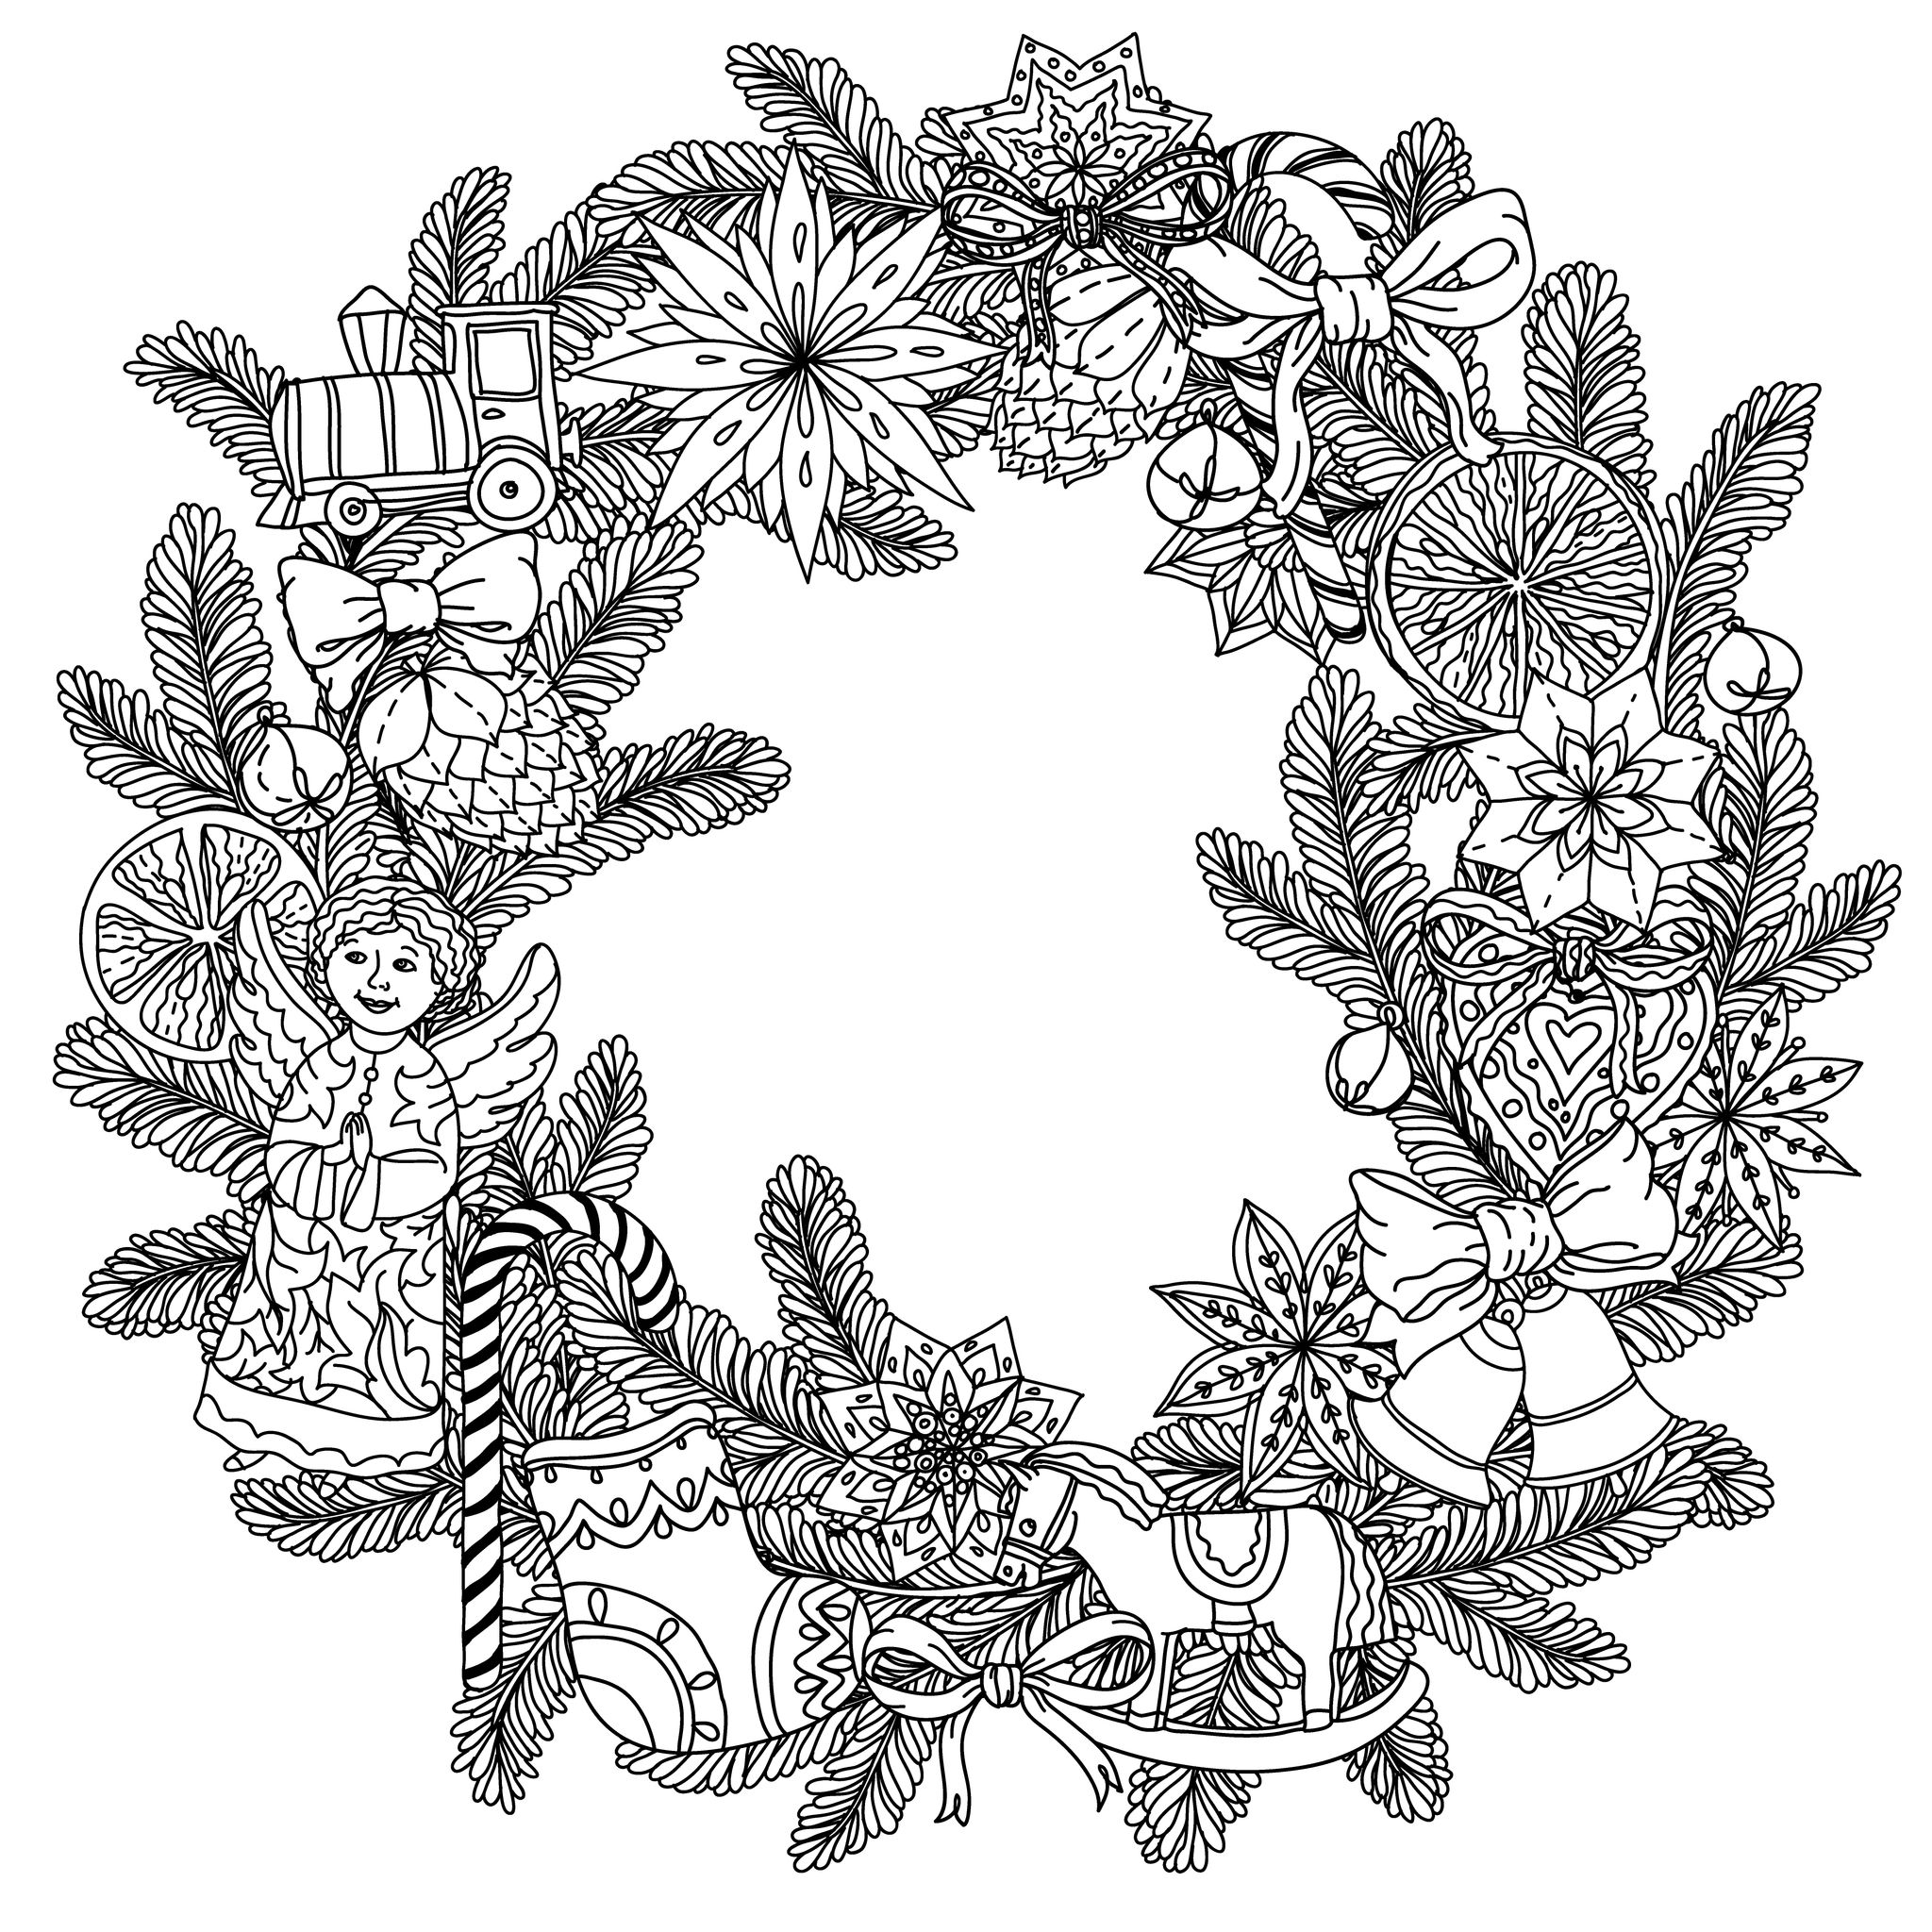 Coloring Page Christmas Wreath Beautiful With Decorative Items Angel Stars Socks And Gifts